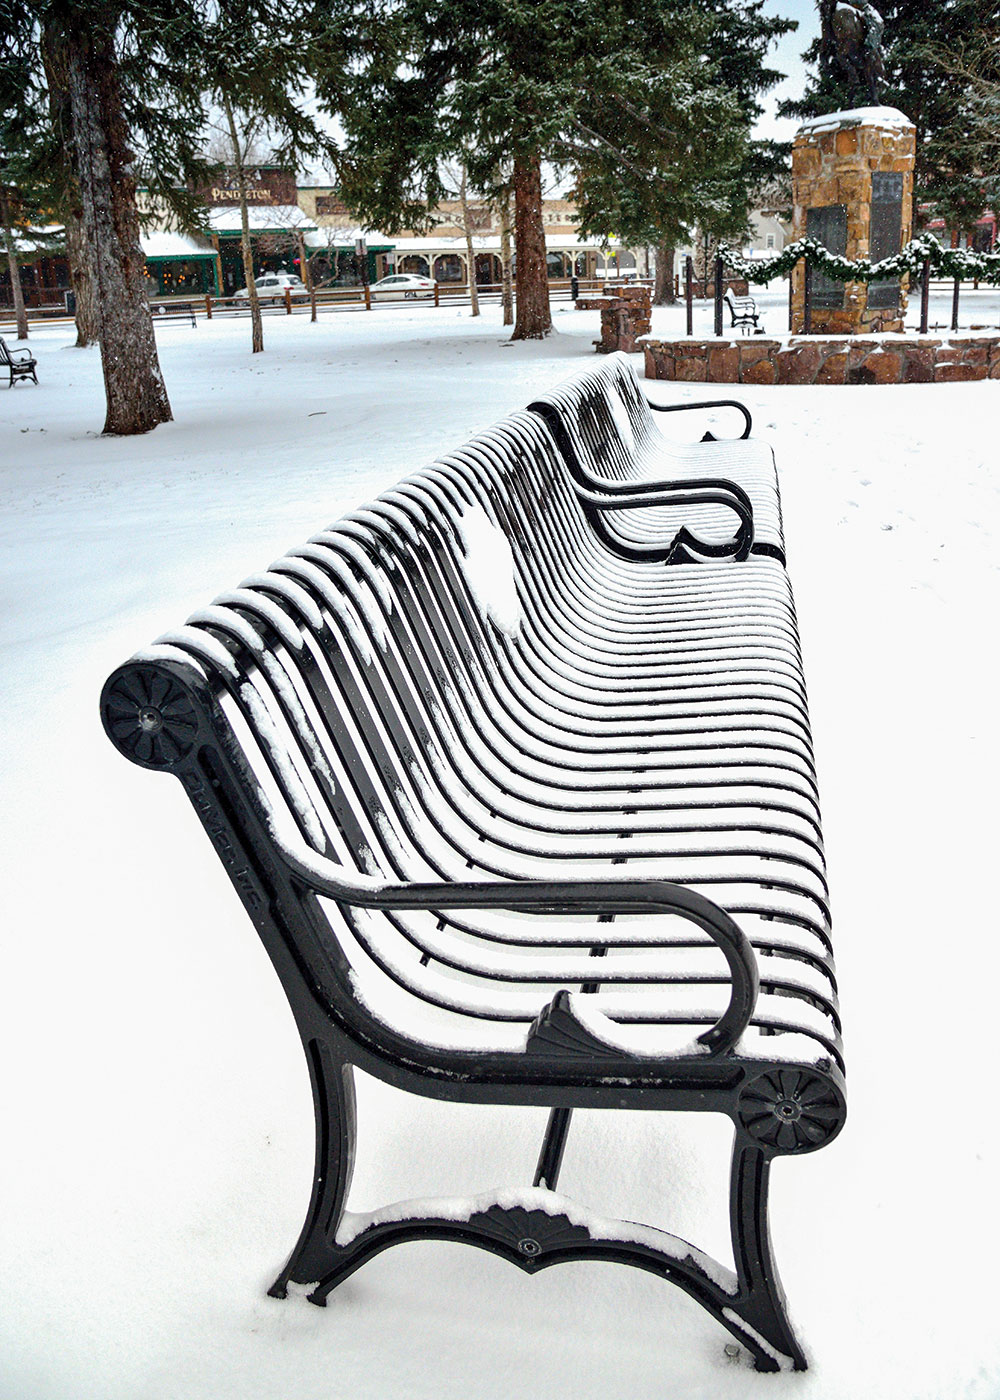 Officials scrapped plans for Western-themed benches made of elk antlers in favor of benches designed to accommodate seniors — with rounded armrests, slightly angled backrests, and no sharp edges — in downtown Jackson Hole, Wyoming's Town Square. Photo by Ivan Sebborn/Alamy Stock Photo.